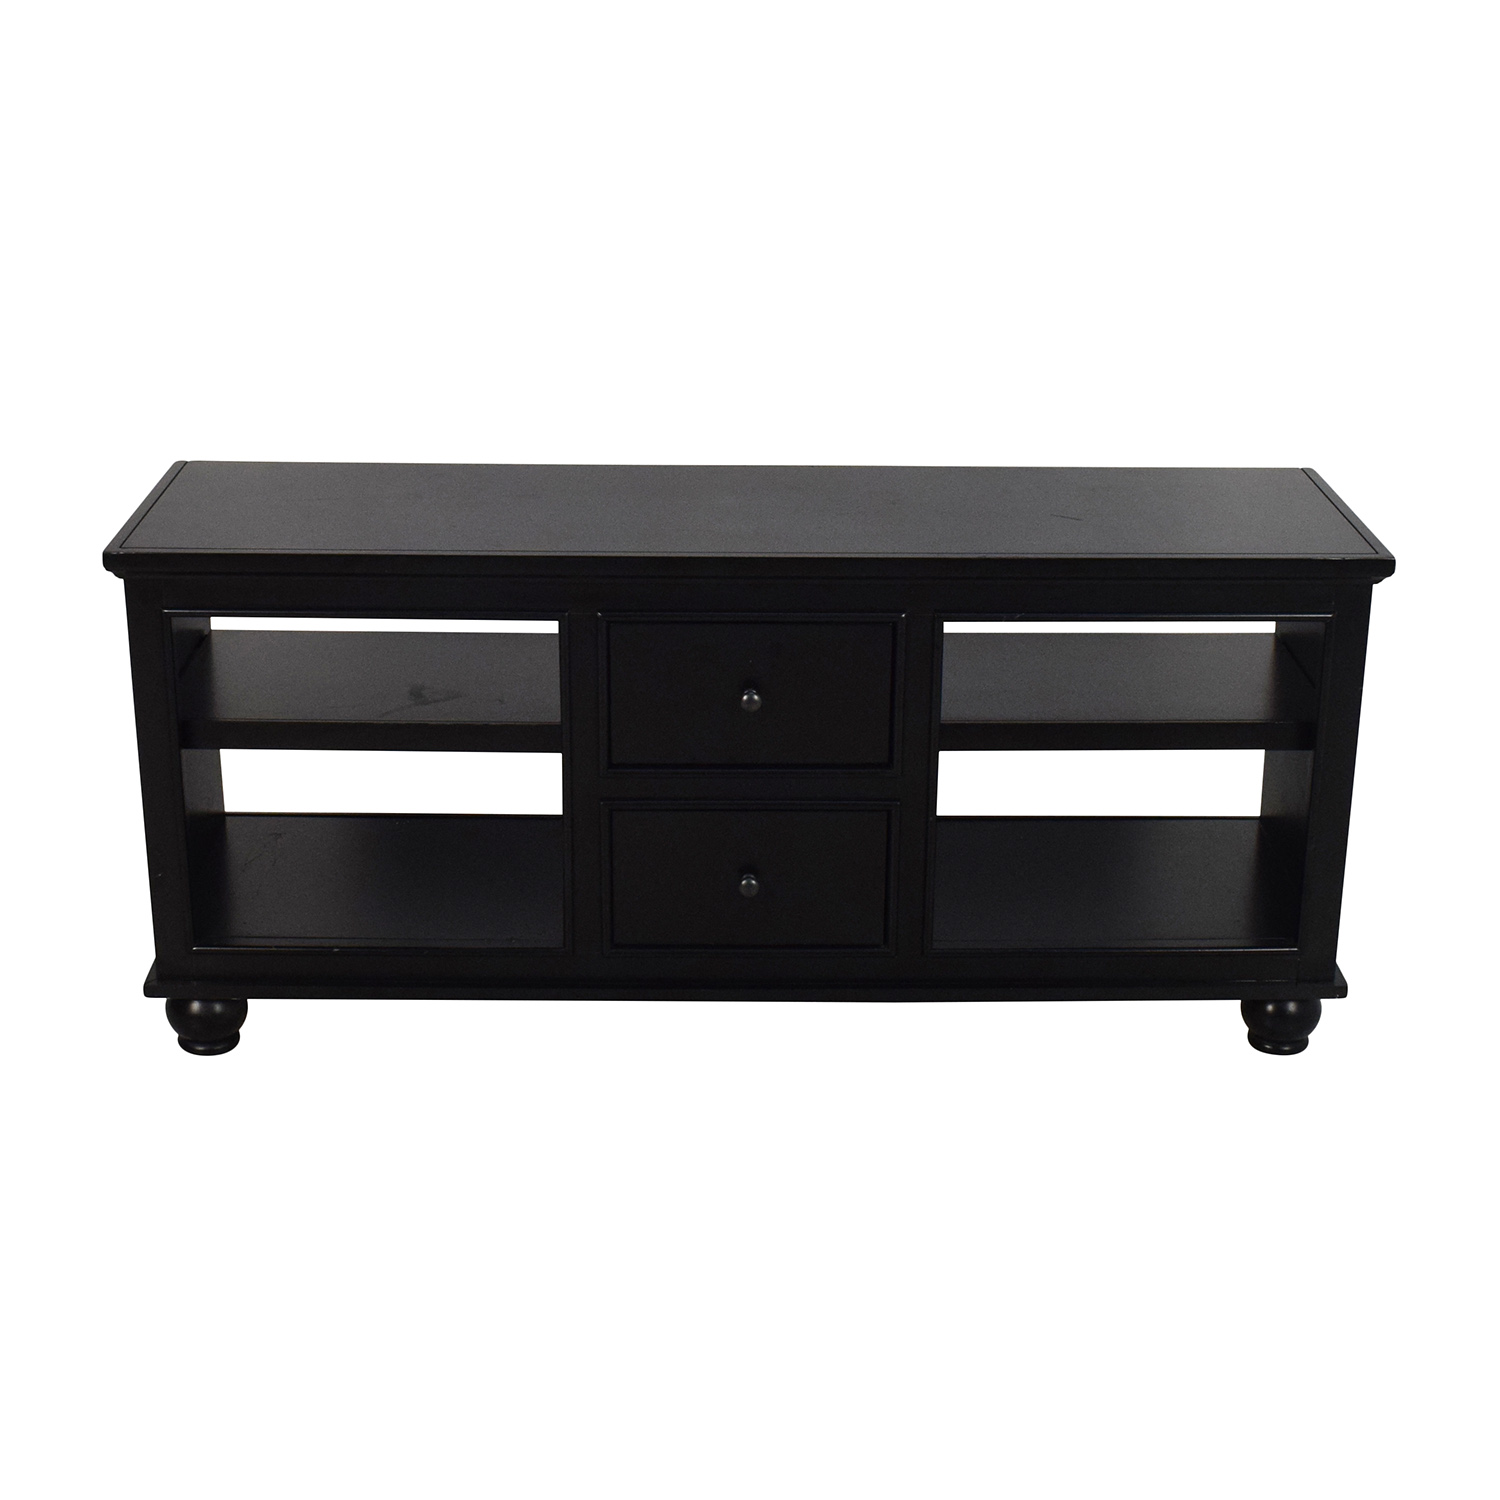 90% OFF   Black Wooden Media Stand With 2 Drawers / Storage